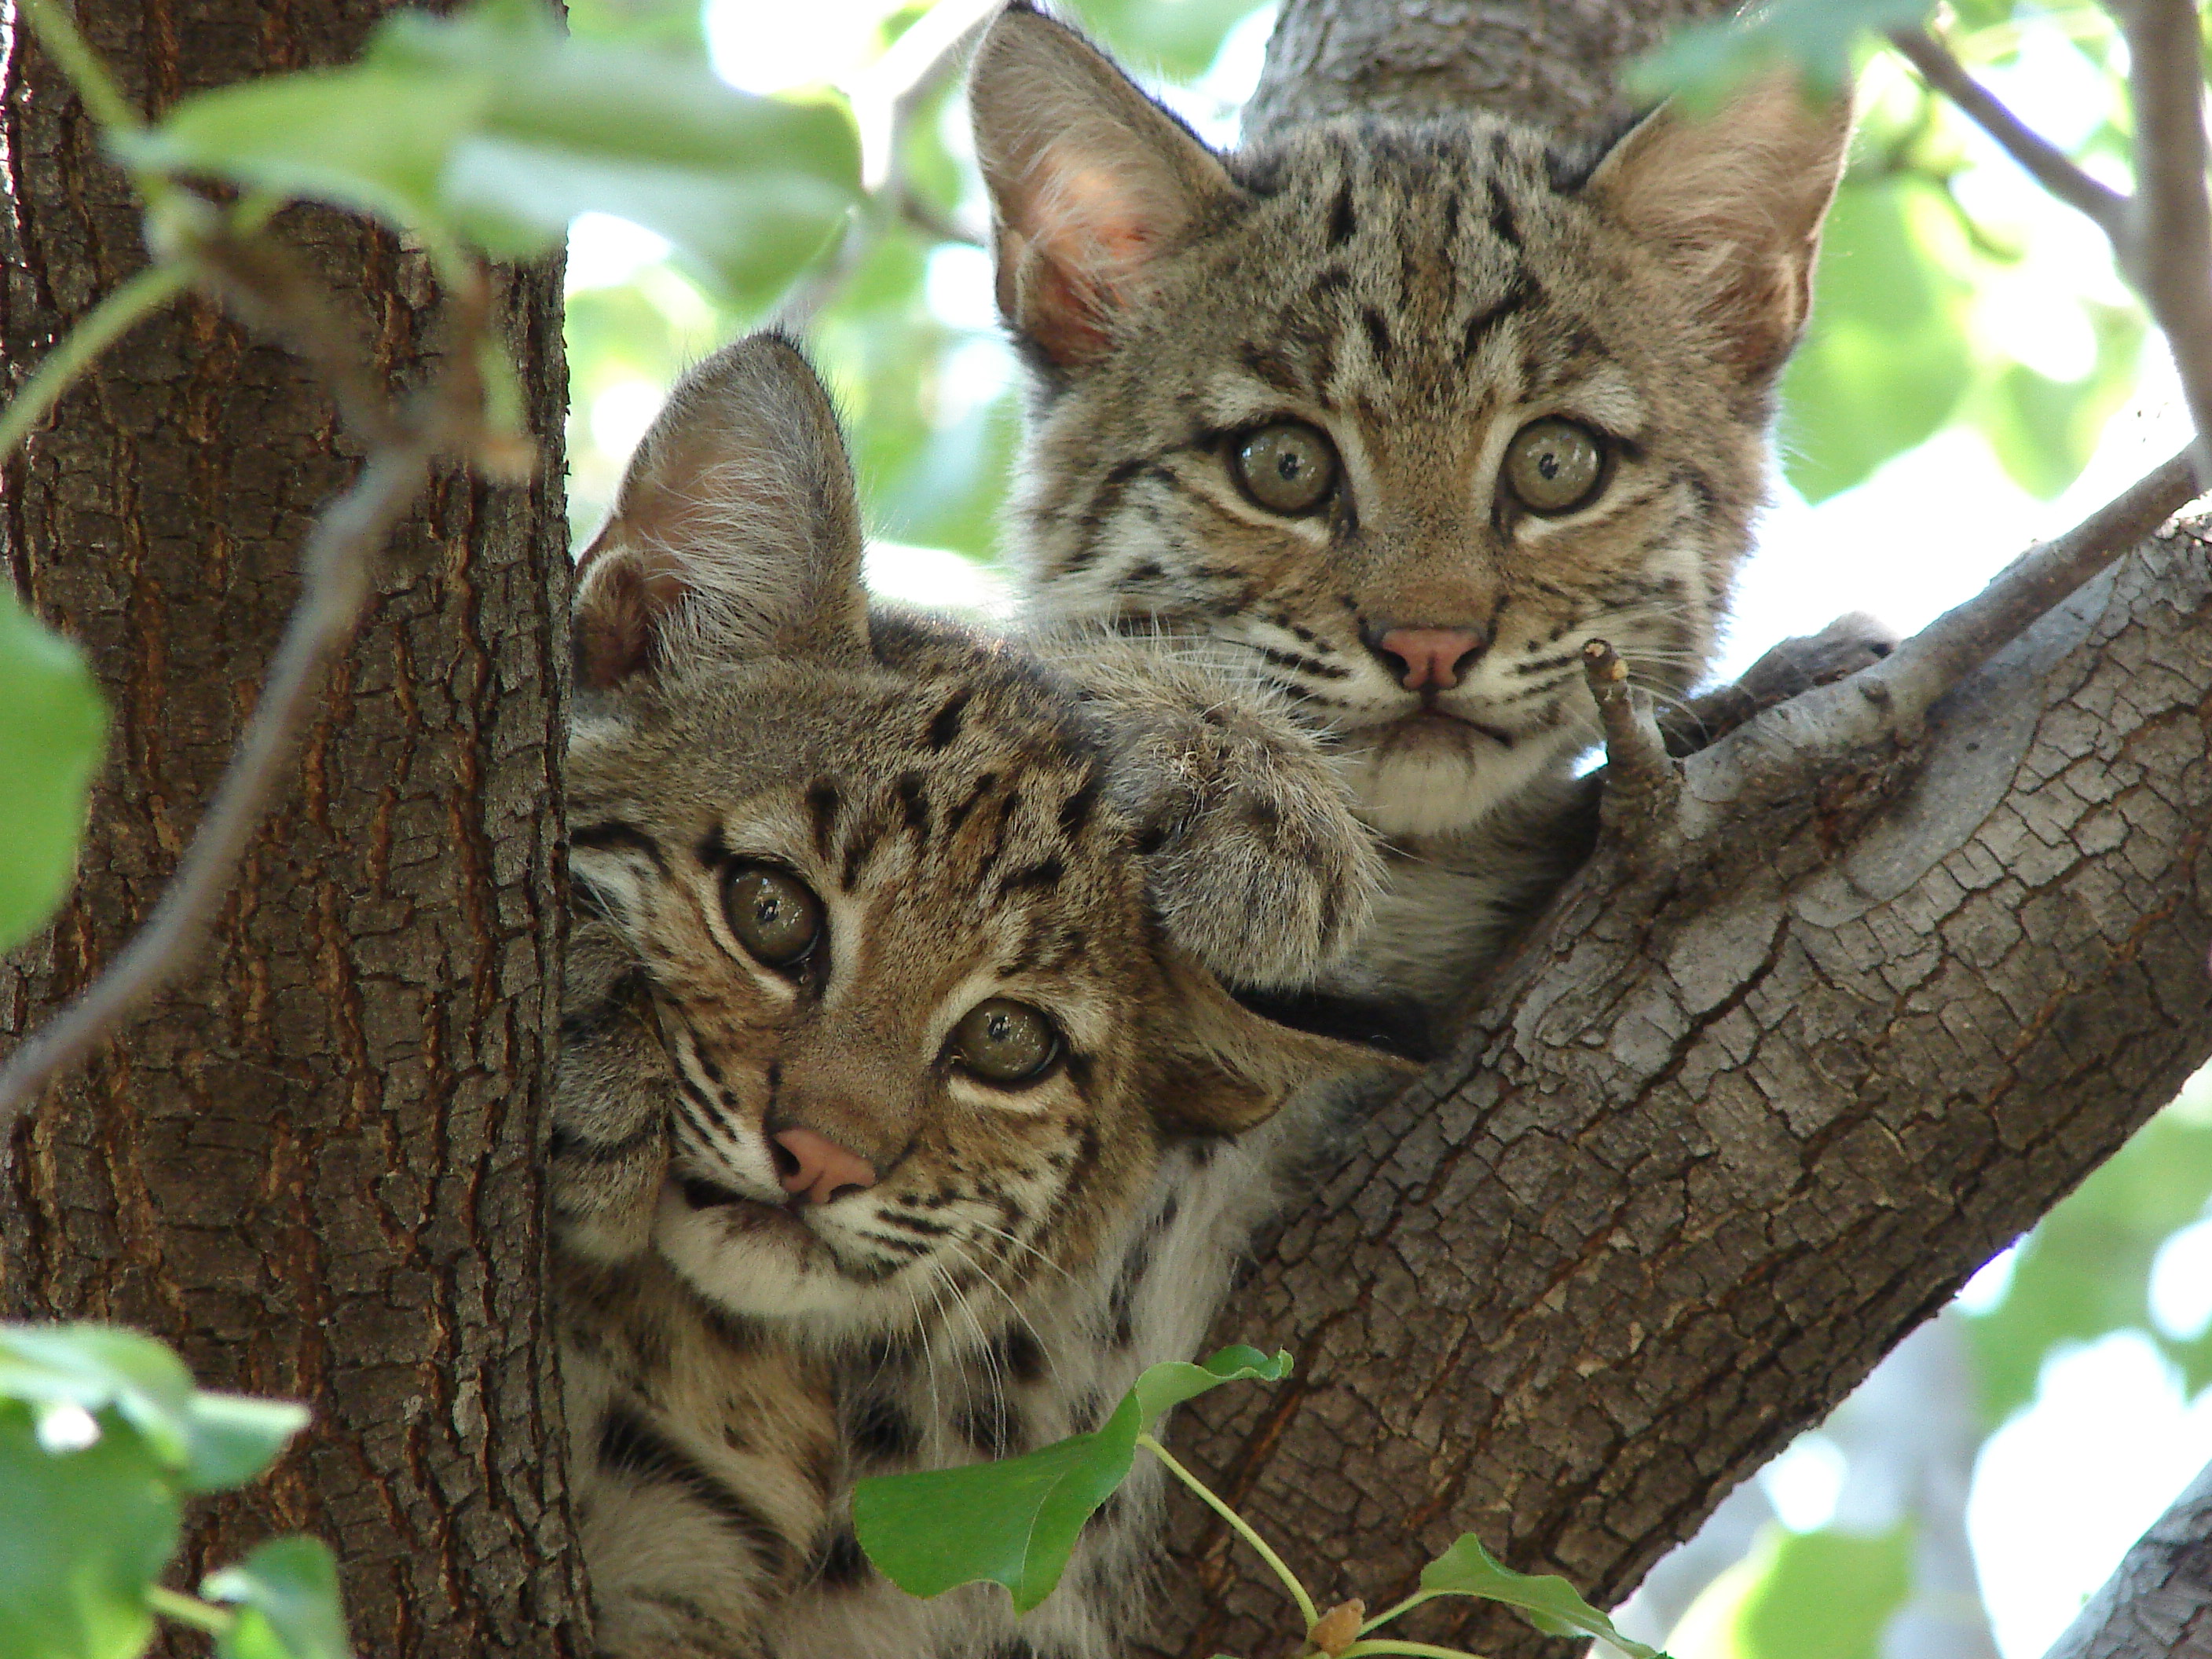 Bobcat kittens (Lynx rufus) in North Texas. Photo by Summer M. Tribble.